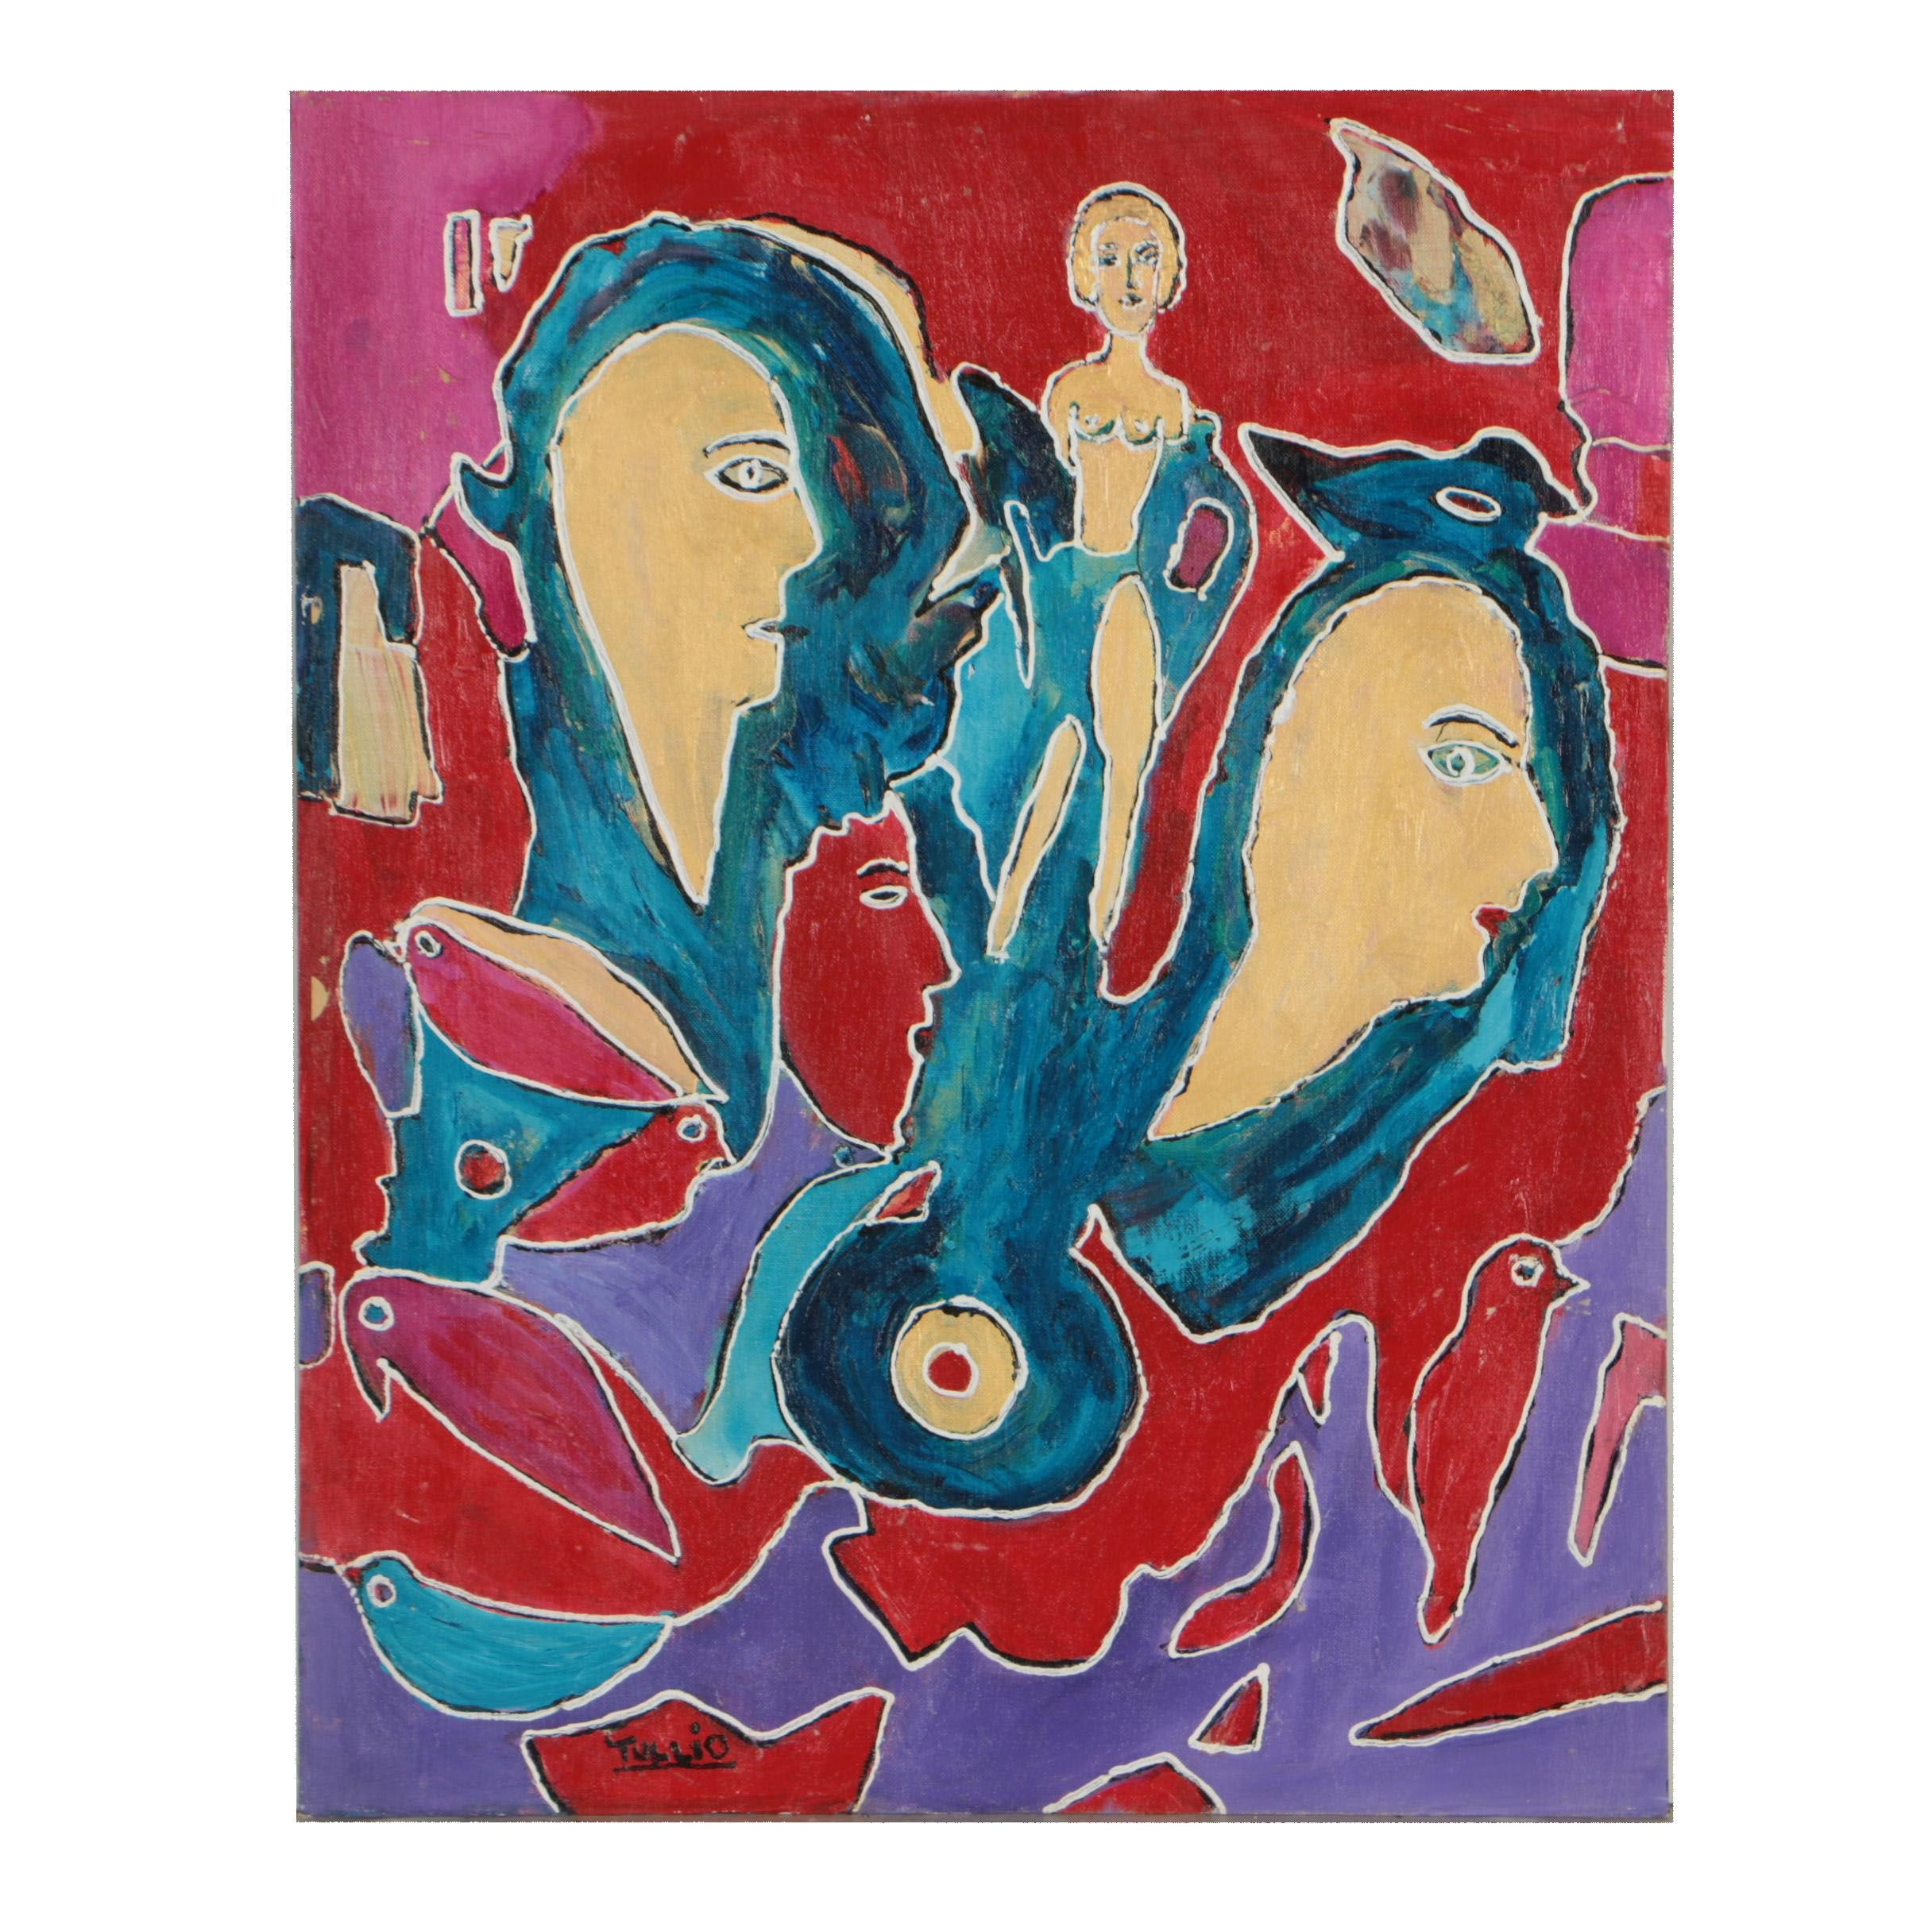 Charles Tullio Acrylic Painting of Abstract Figures